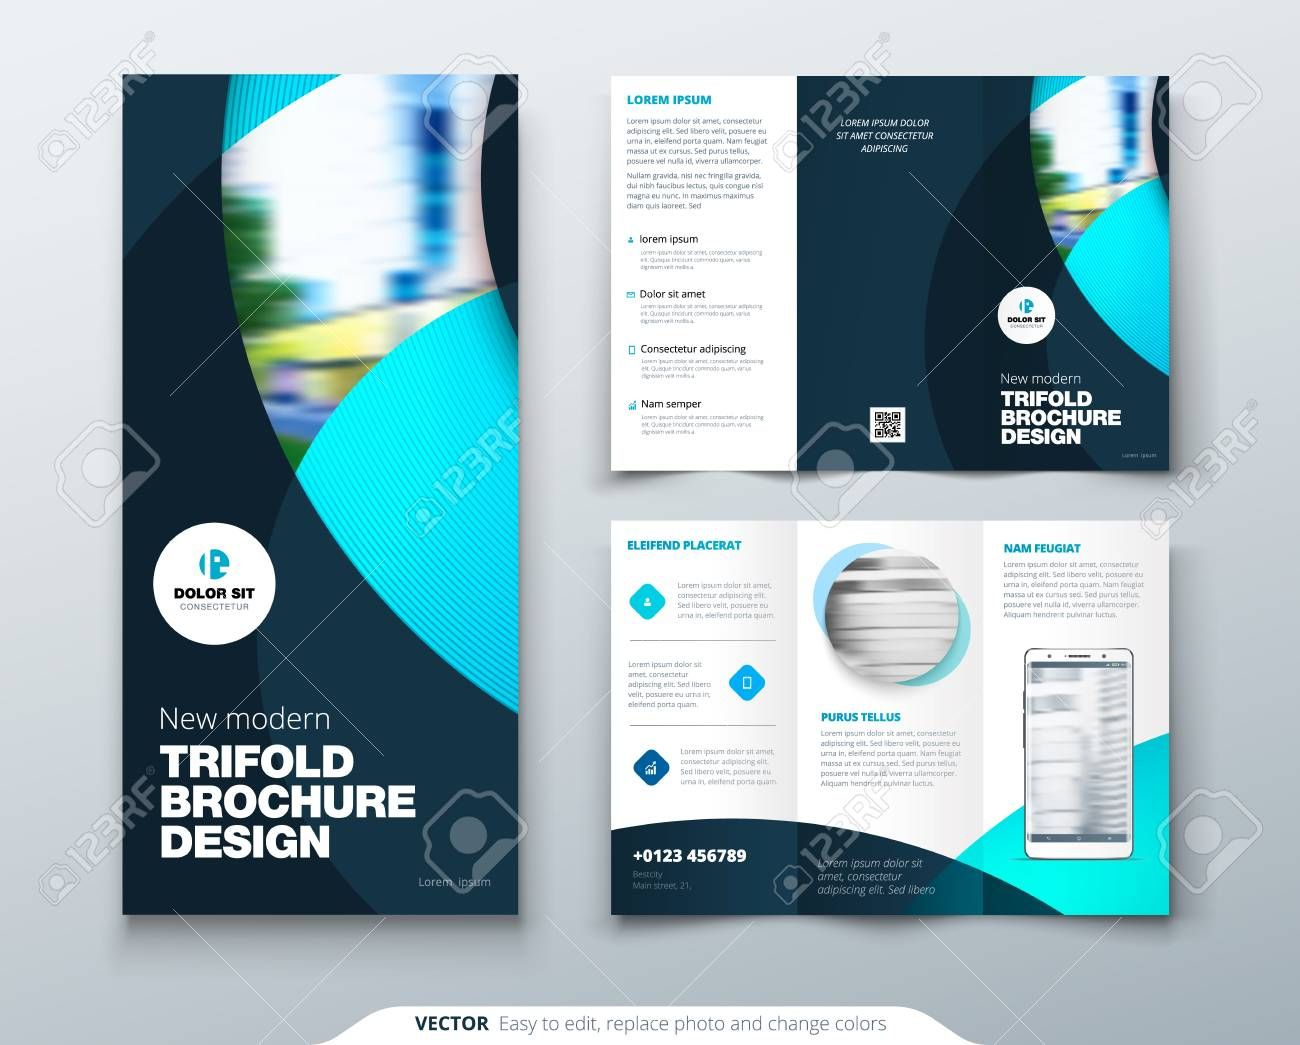 Tri Fold Brochure Design With Circle Corporate Business Template Within Fold Over Business Brochure Design Template Trifold Brochure Design Brochure Design